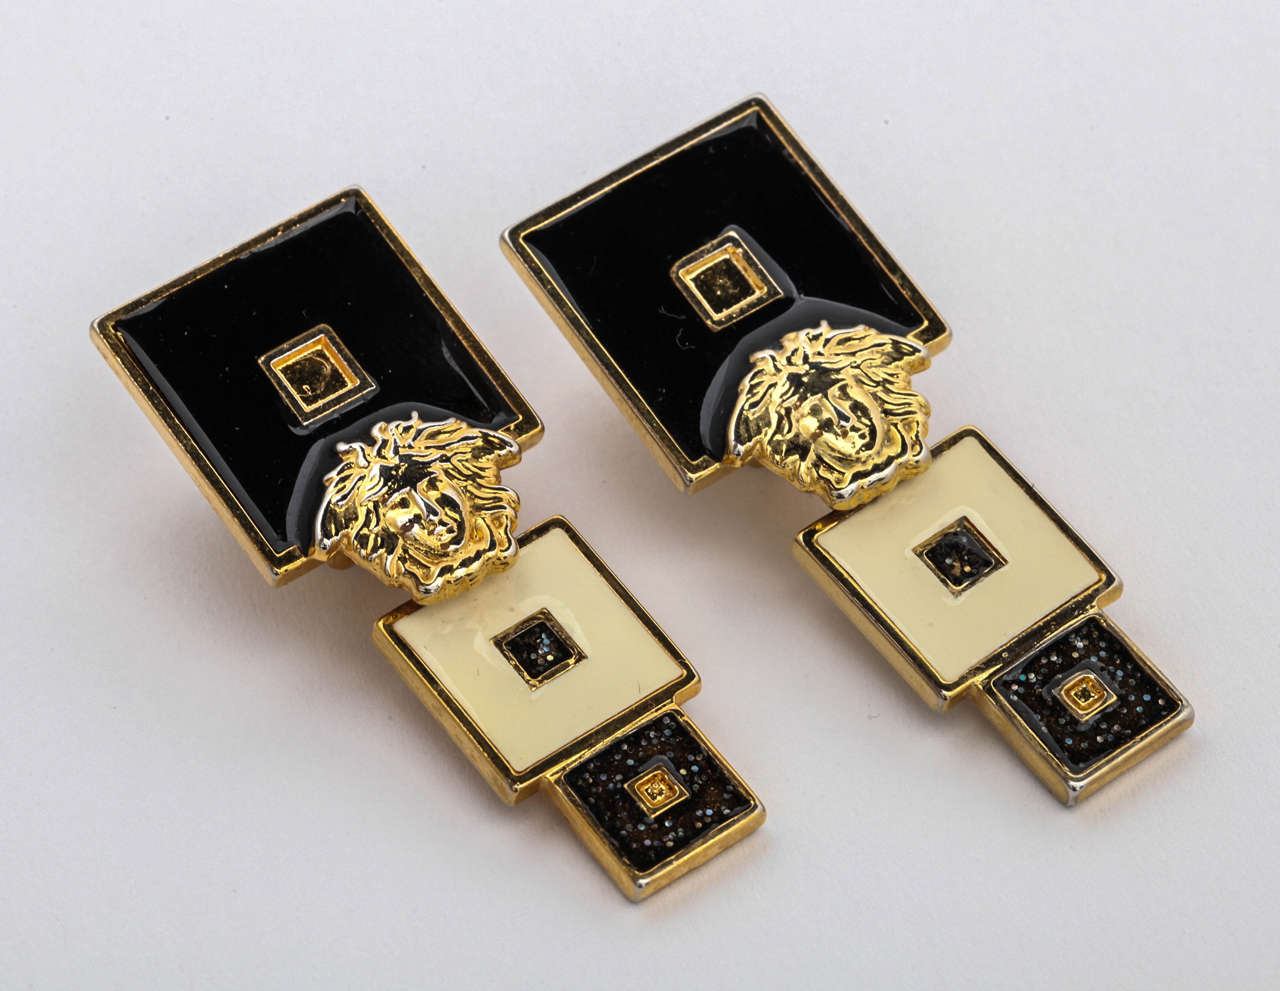 Very rare vintage Gianni Versace earrings with Medusa in black and white.